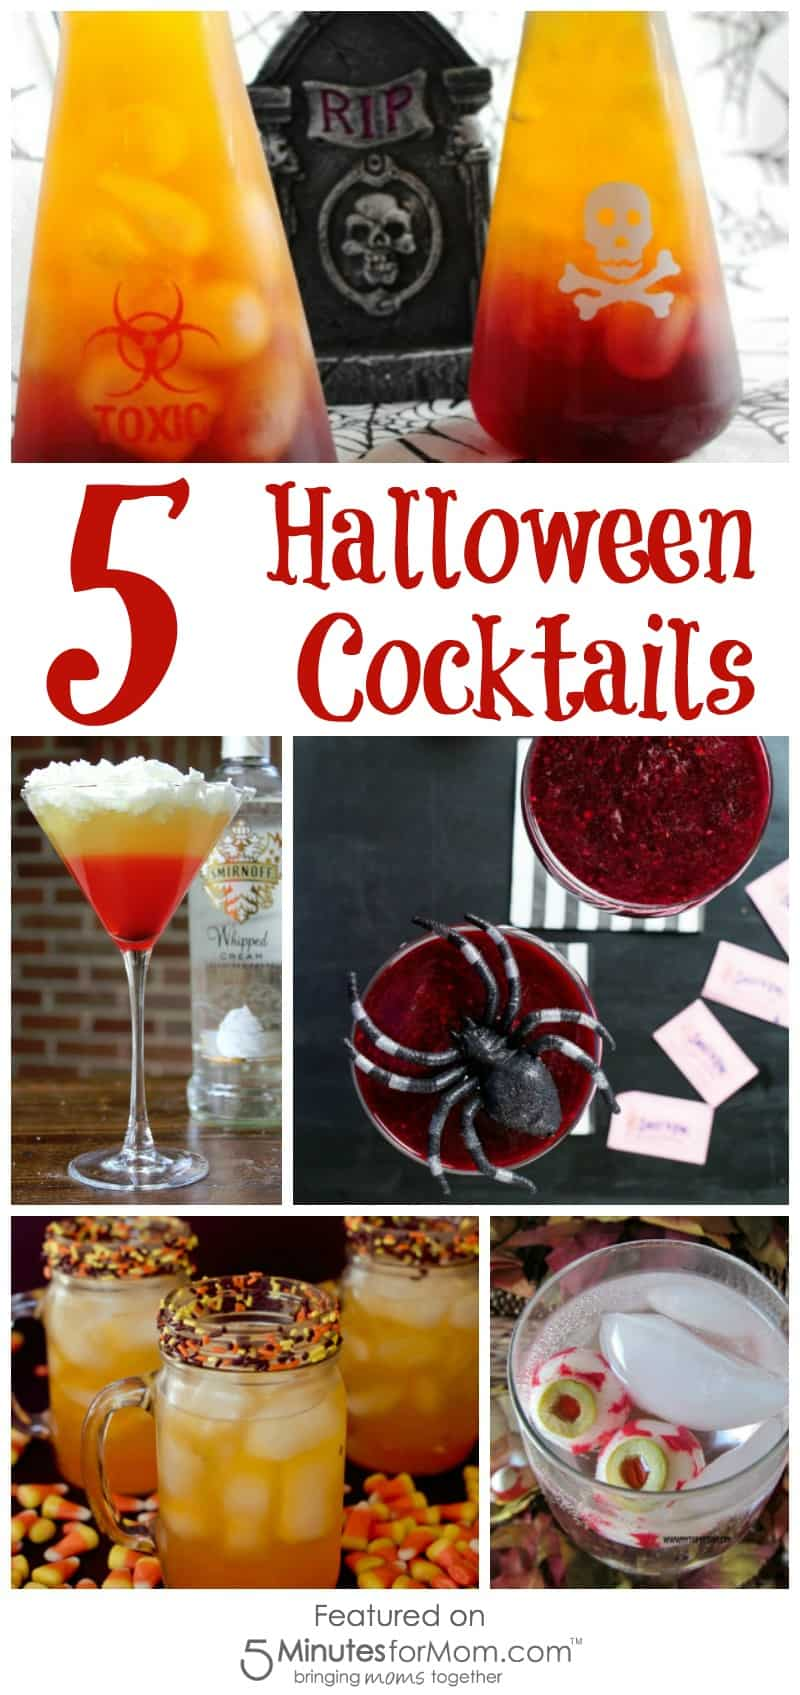 5 Halloween Cocktails - Drinks perfect for a Halloween Party